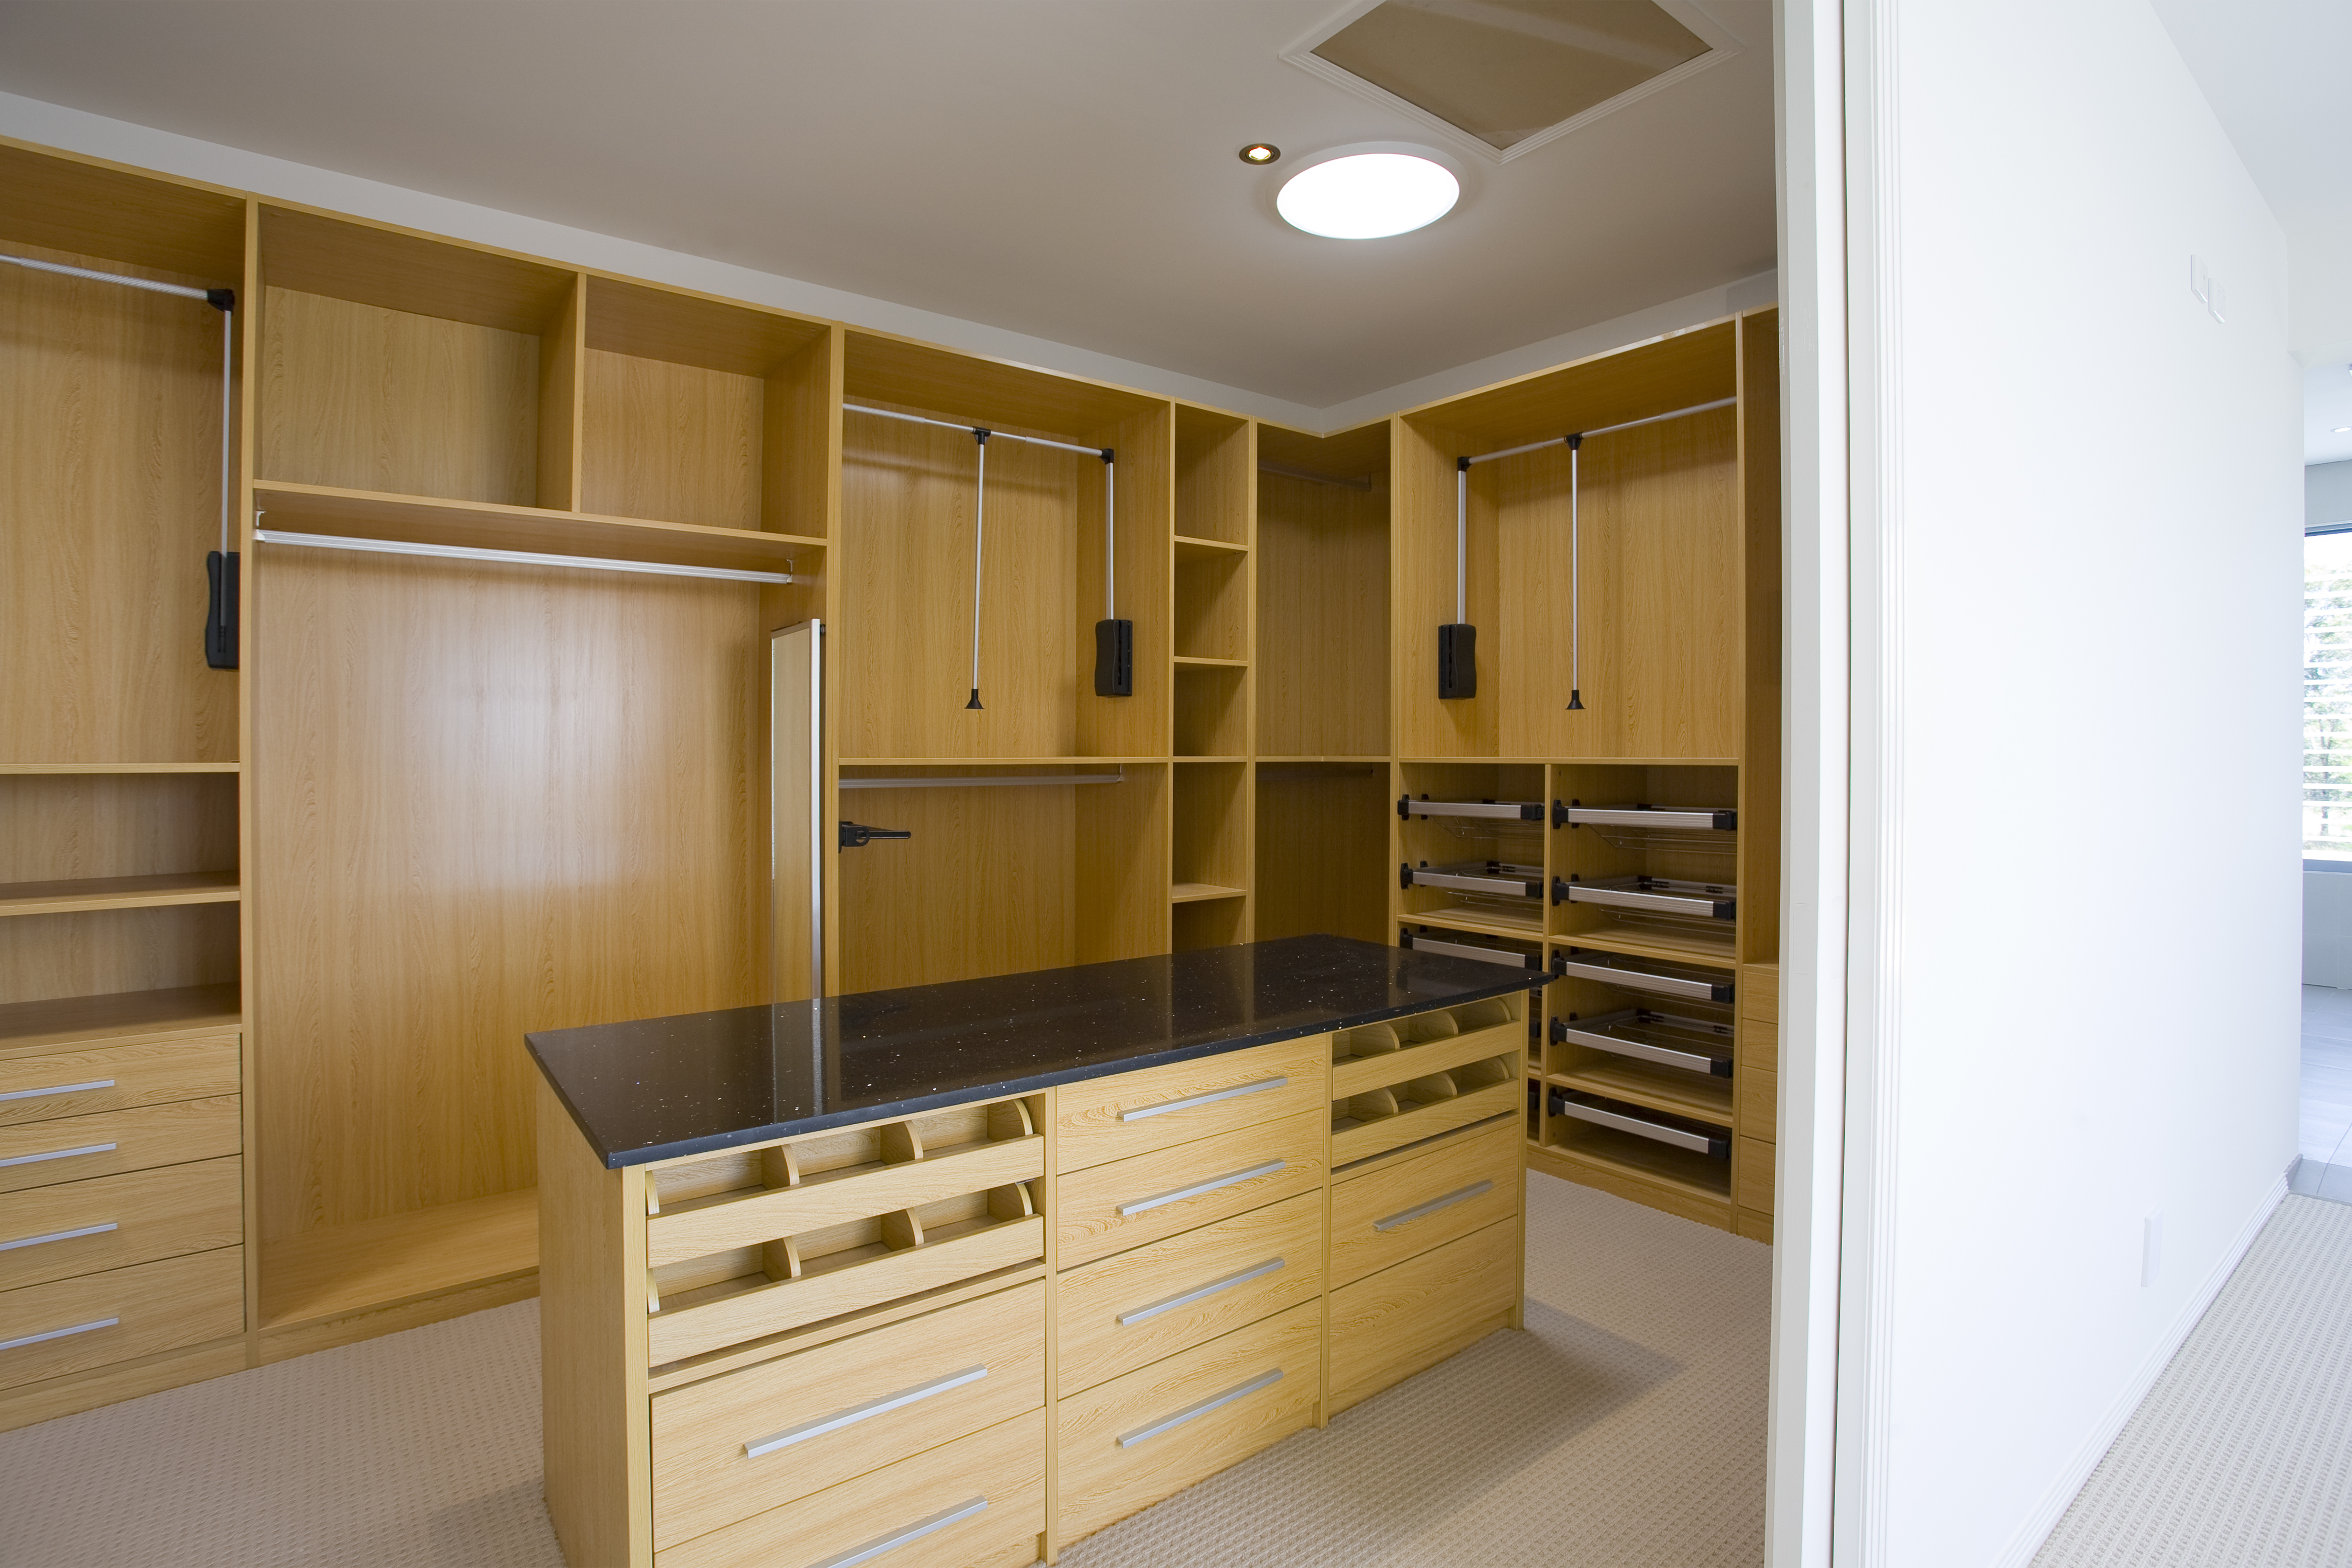 This is the perfect example of fitted furniture and accessories that Capital Bedrooms has to offer